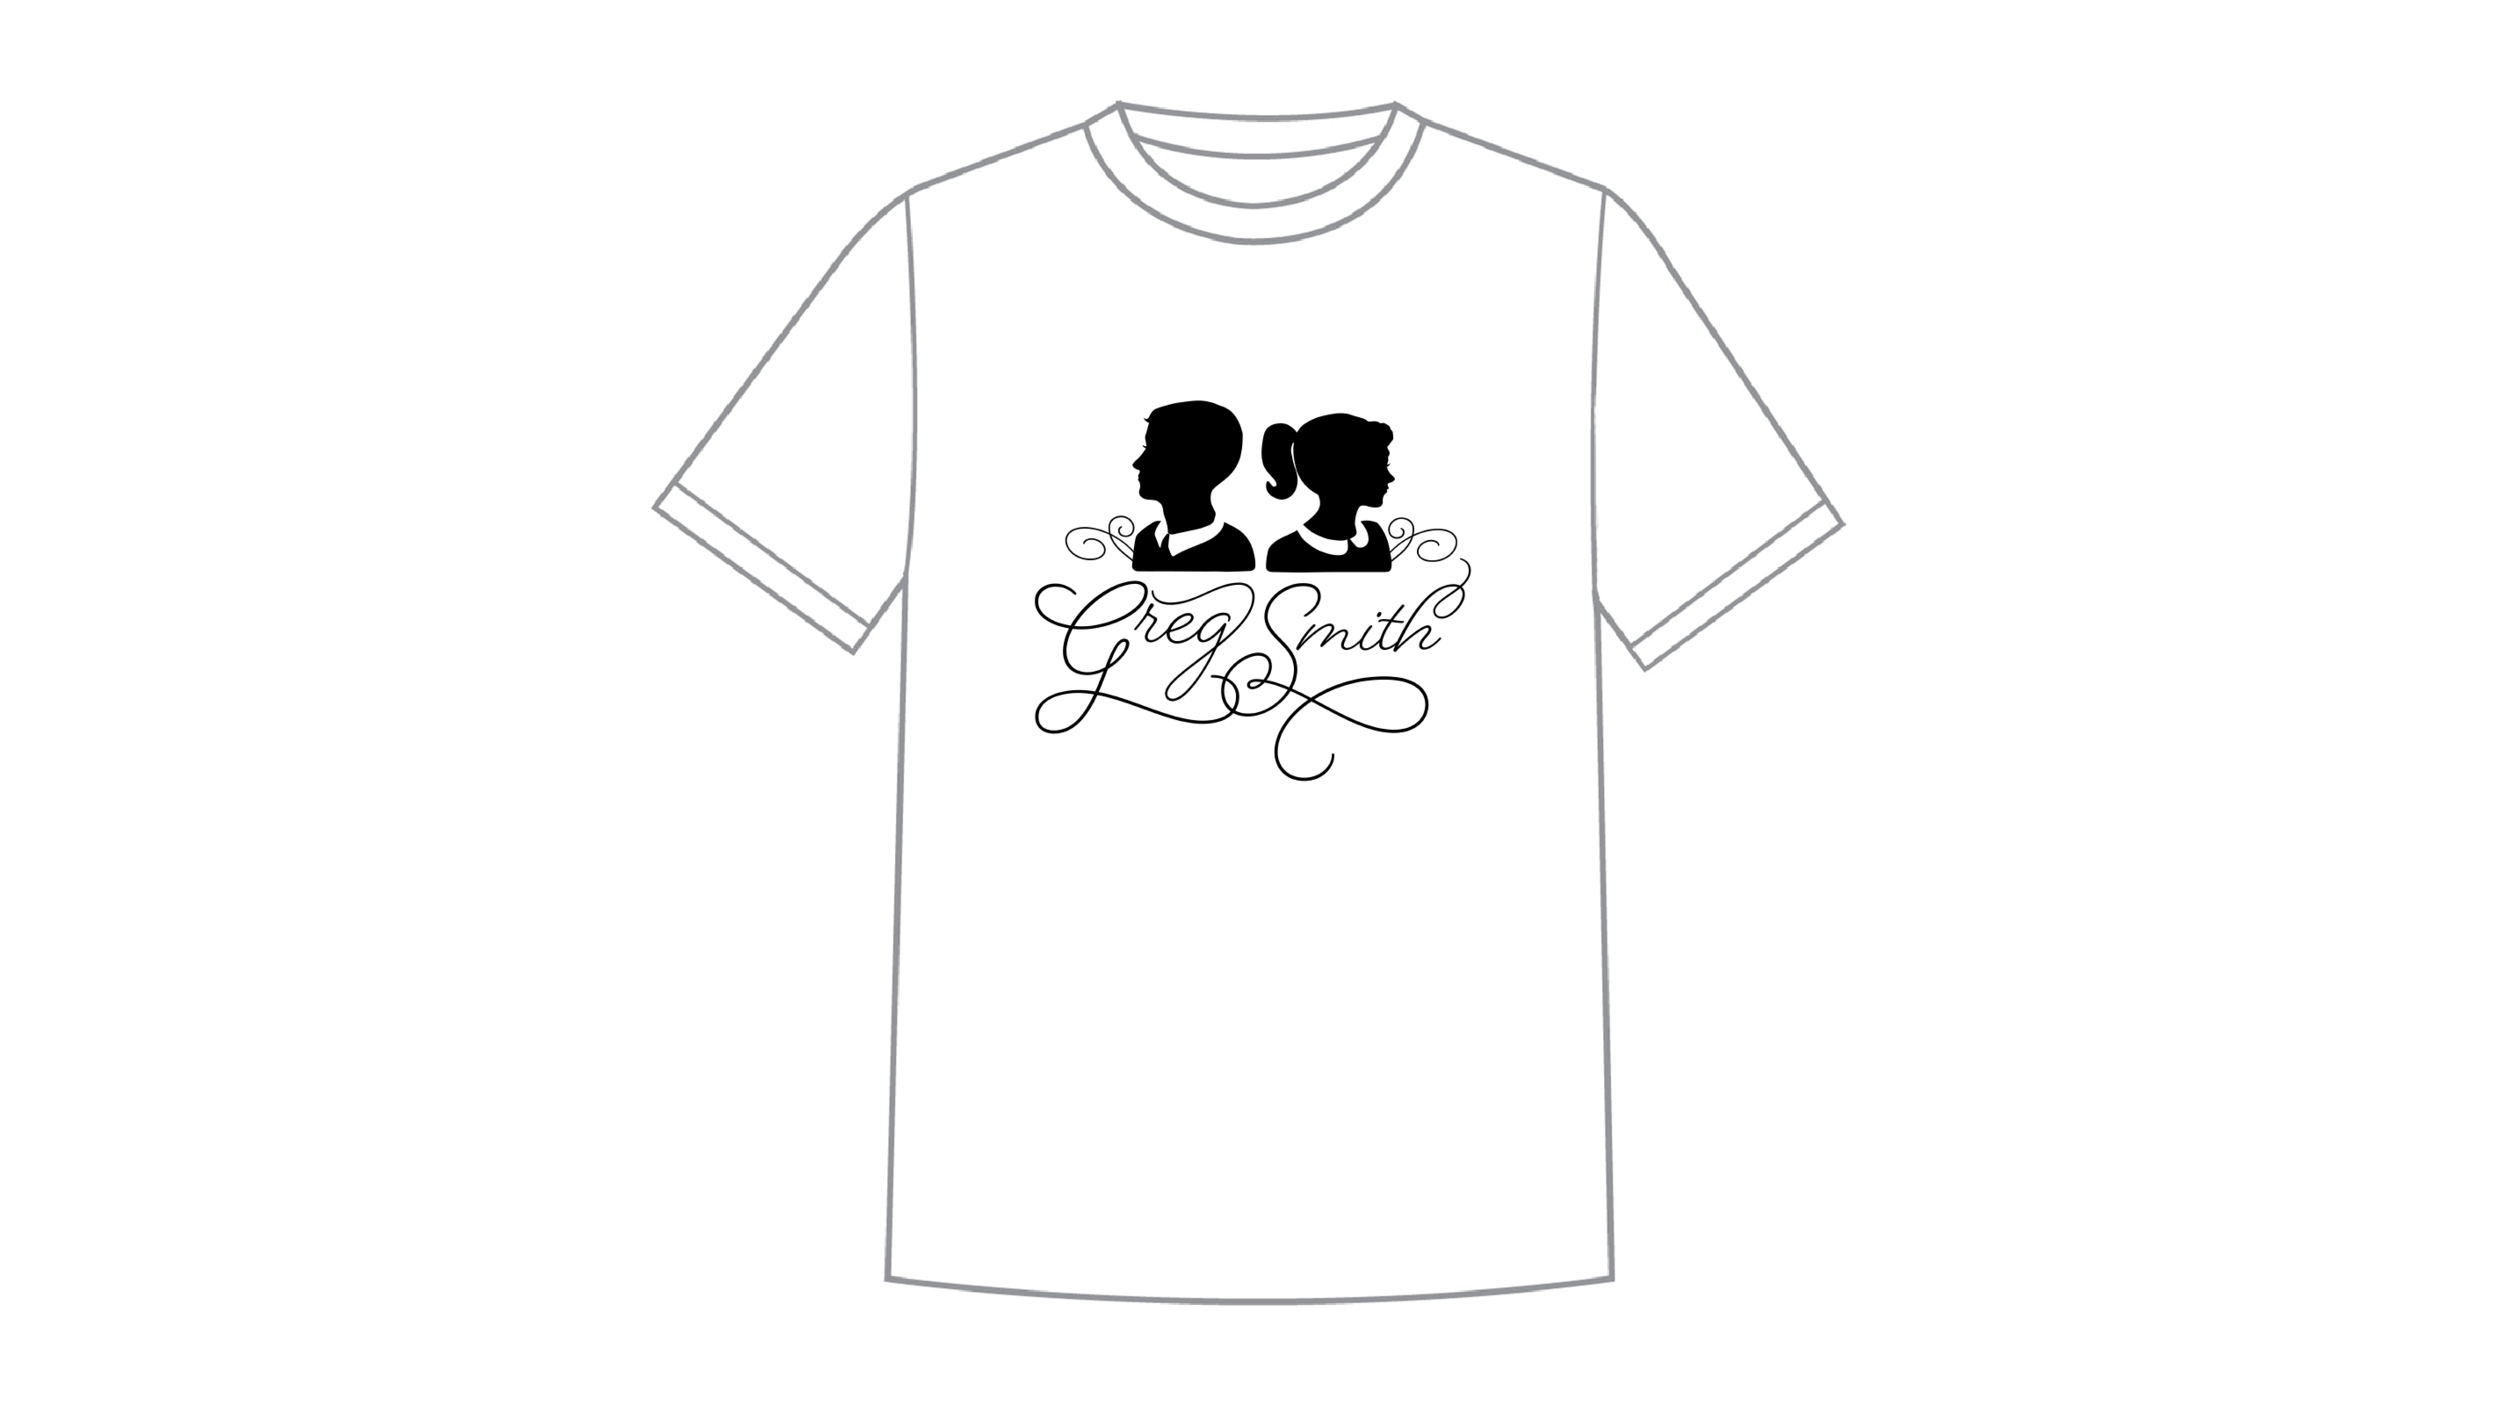 greg smith tshirt mock up-01.png